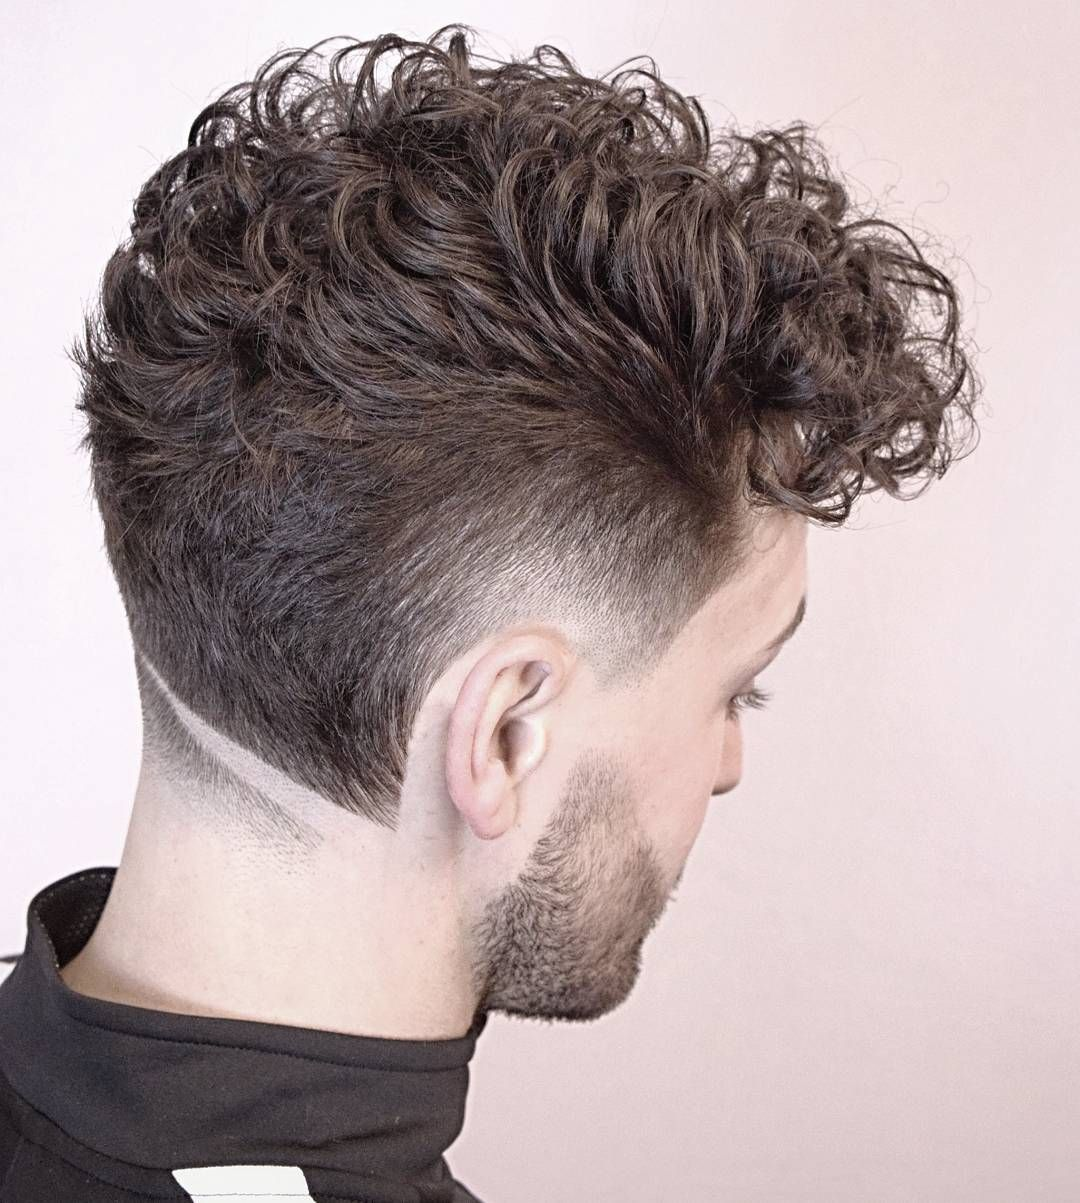 new hairstyles for men: neckline hair design | new hairstyles for